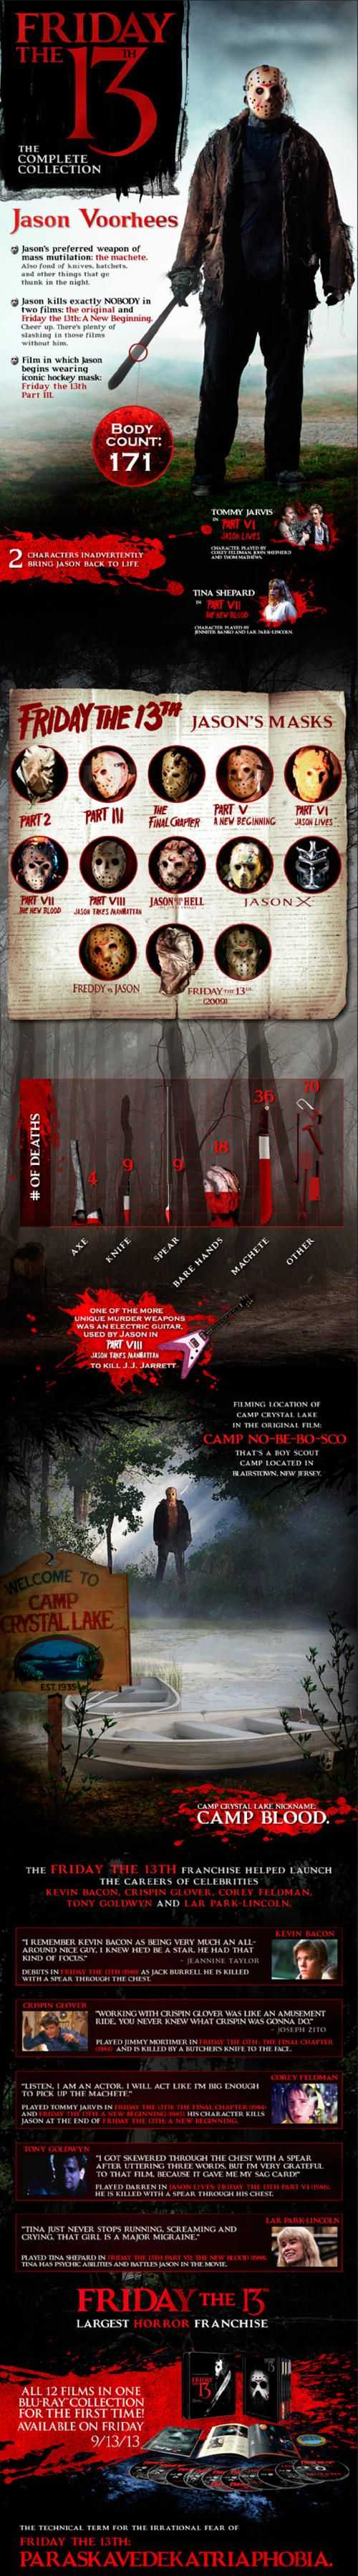 Huge Infographic Details The Entire Friday The 13th Franchise | Friday The 13th: The Film Franchise